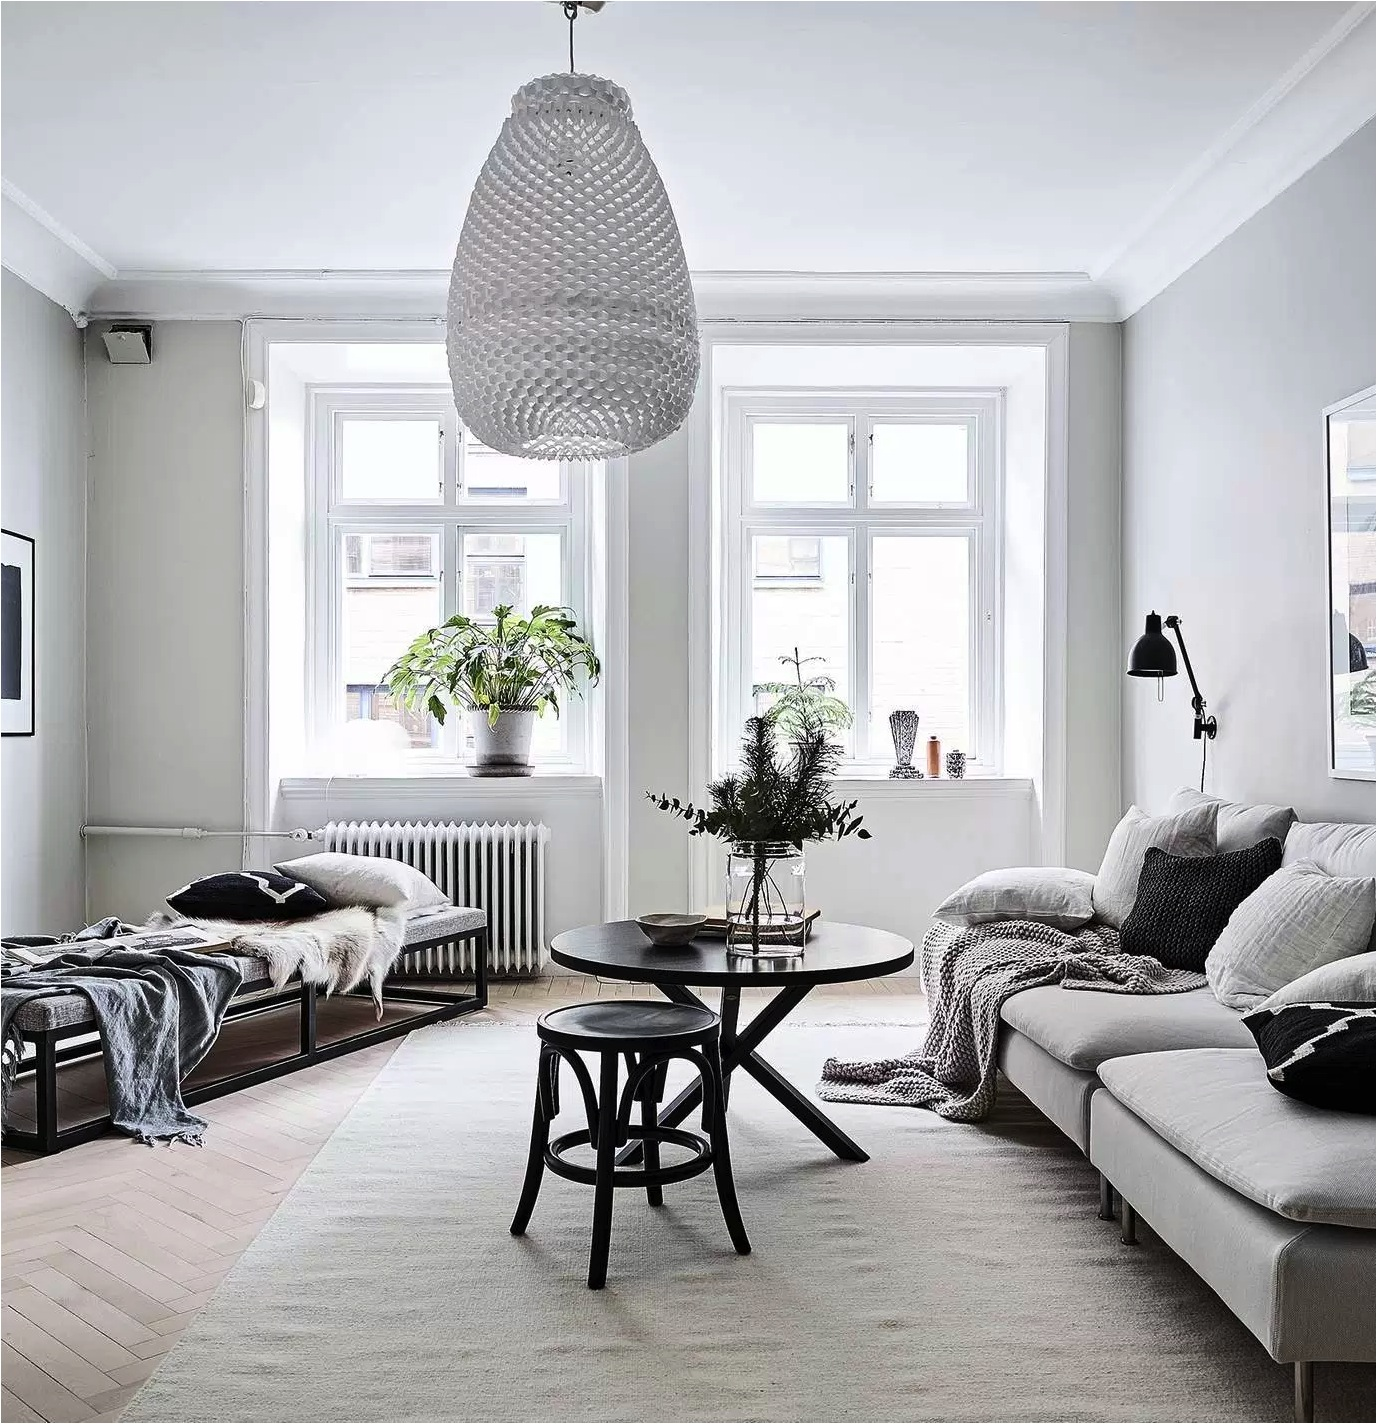 8 clever small living room ideas (with Scandi style) - DIY home ...